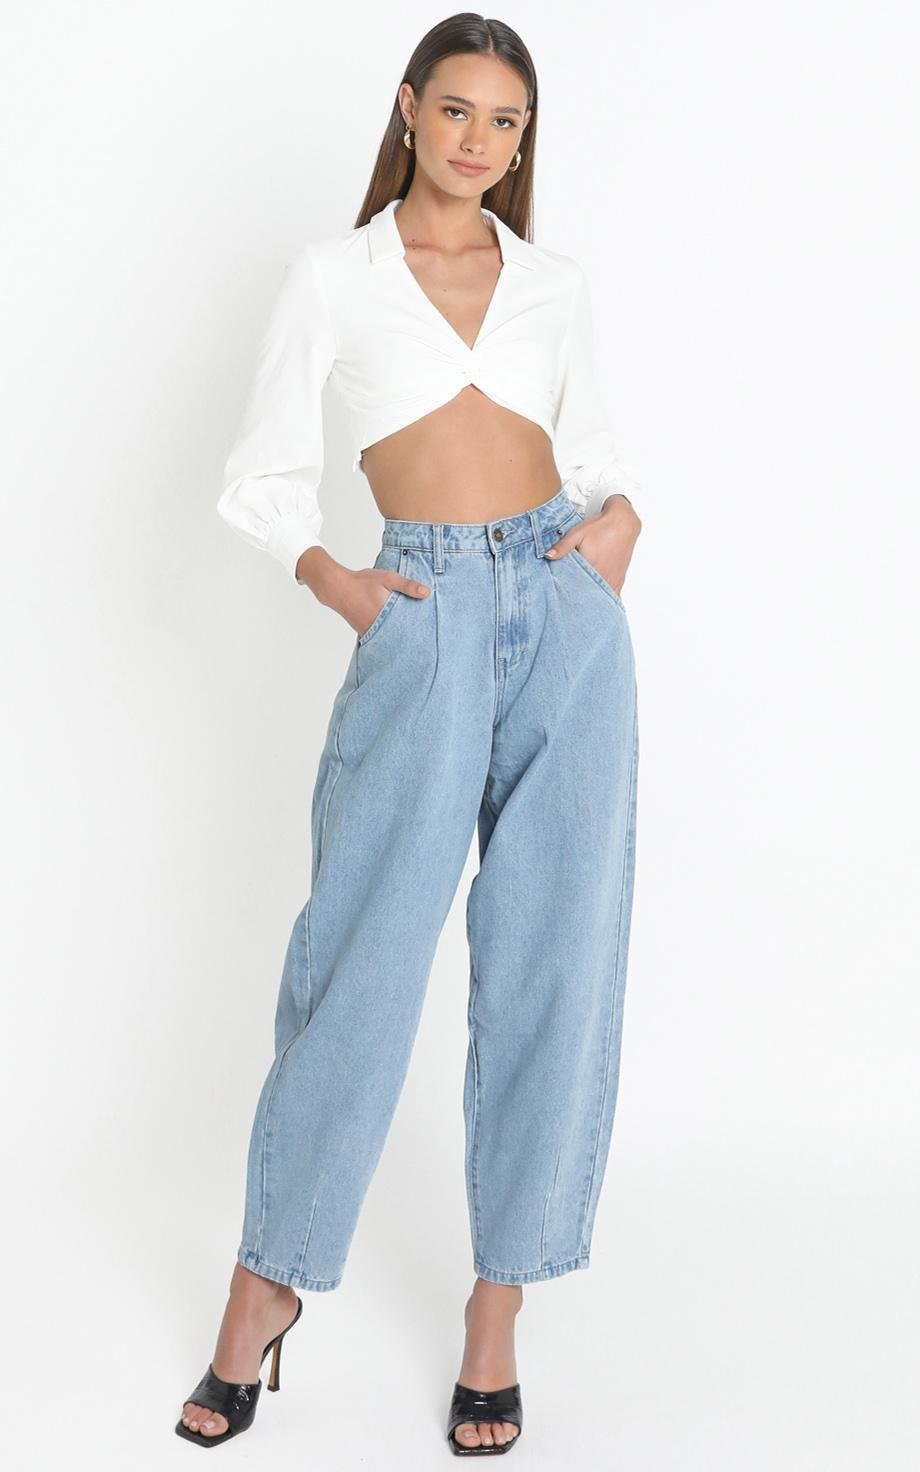 Lioness - On My Way Jeans in Denim - 12 (L), Blue, hi-res image number null